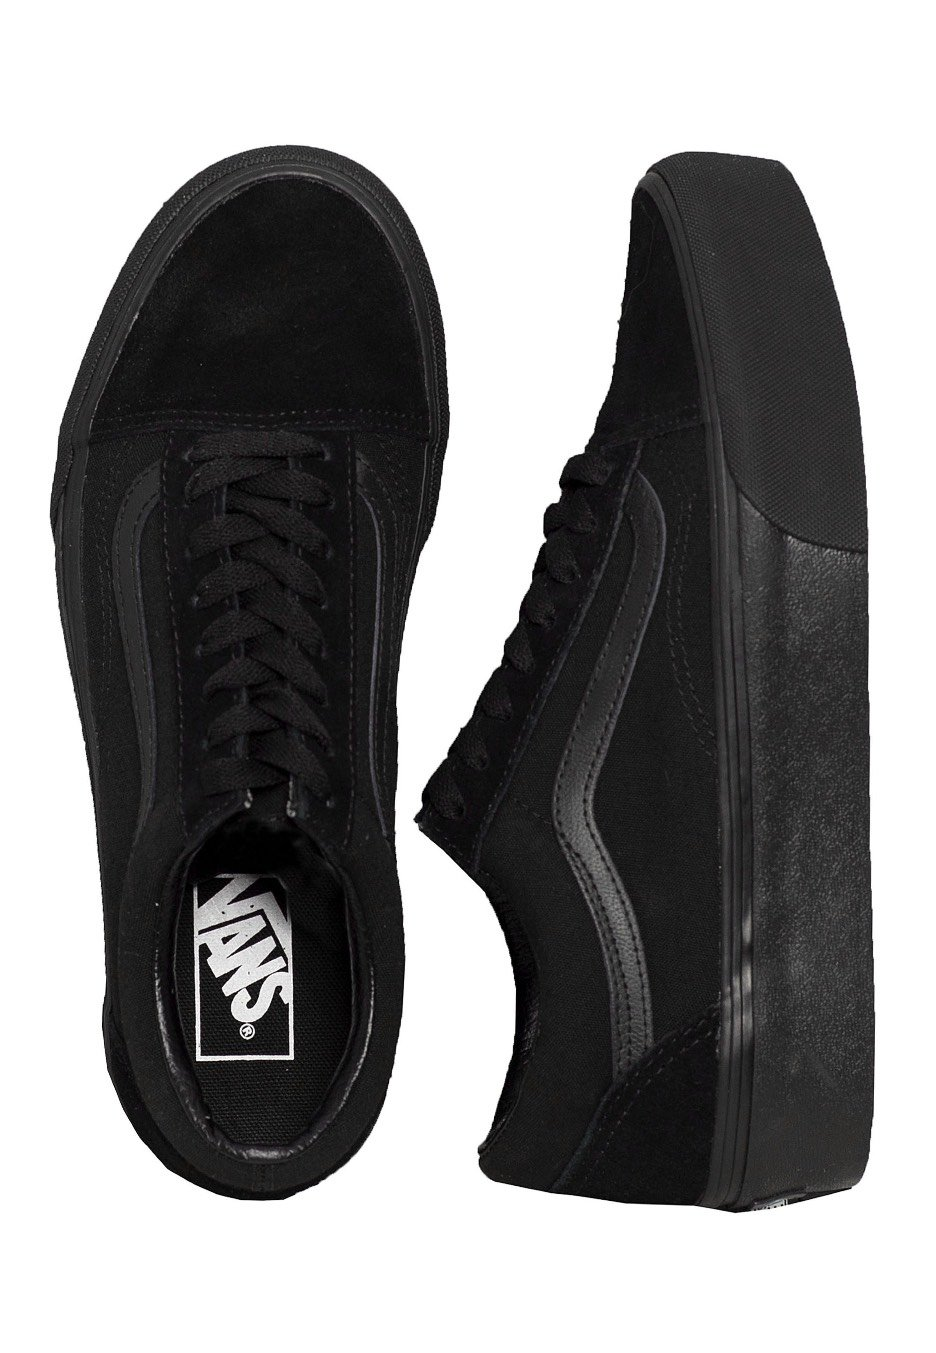 ecc700aa2f7 Vans - Old Skool Platform Black Black - Girl Shoes - Impericon.com Worldwide